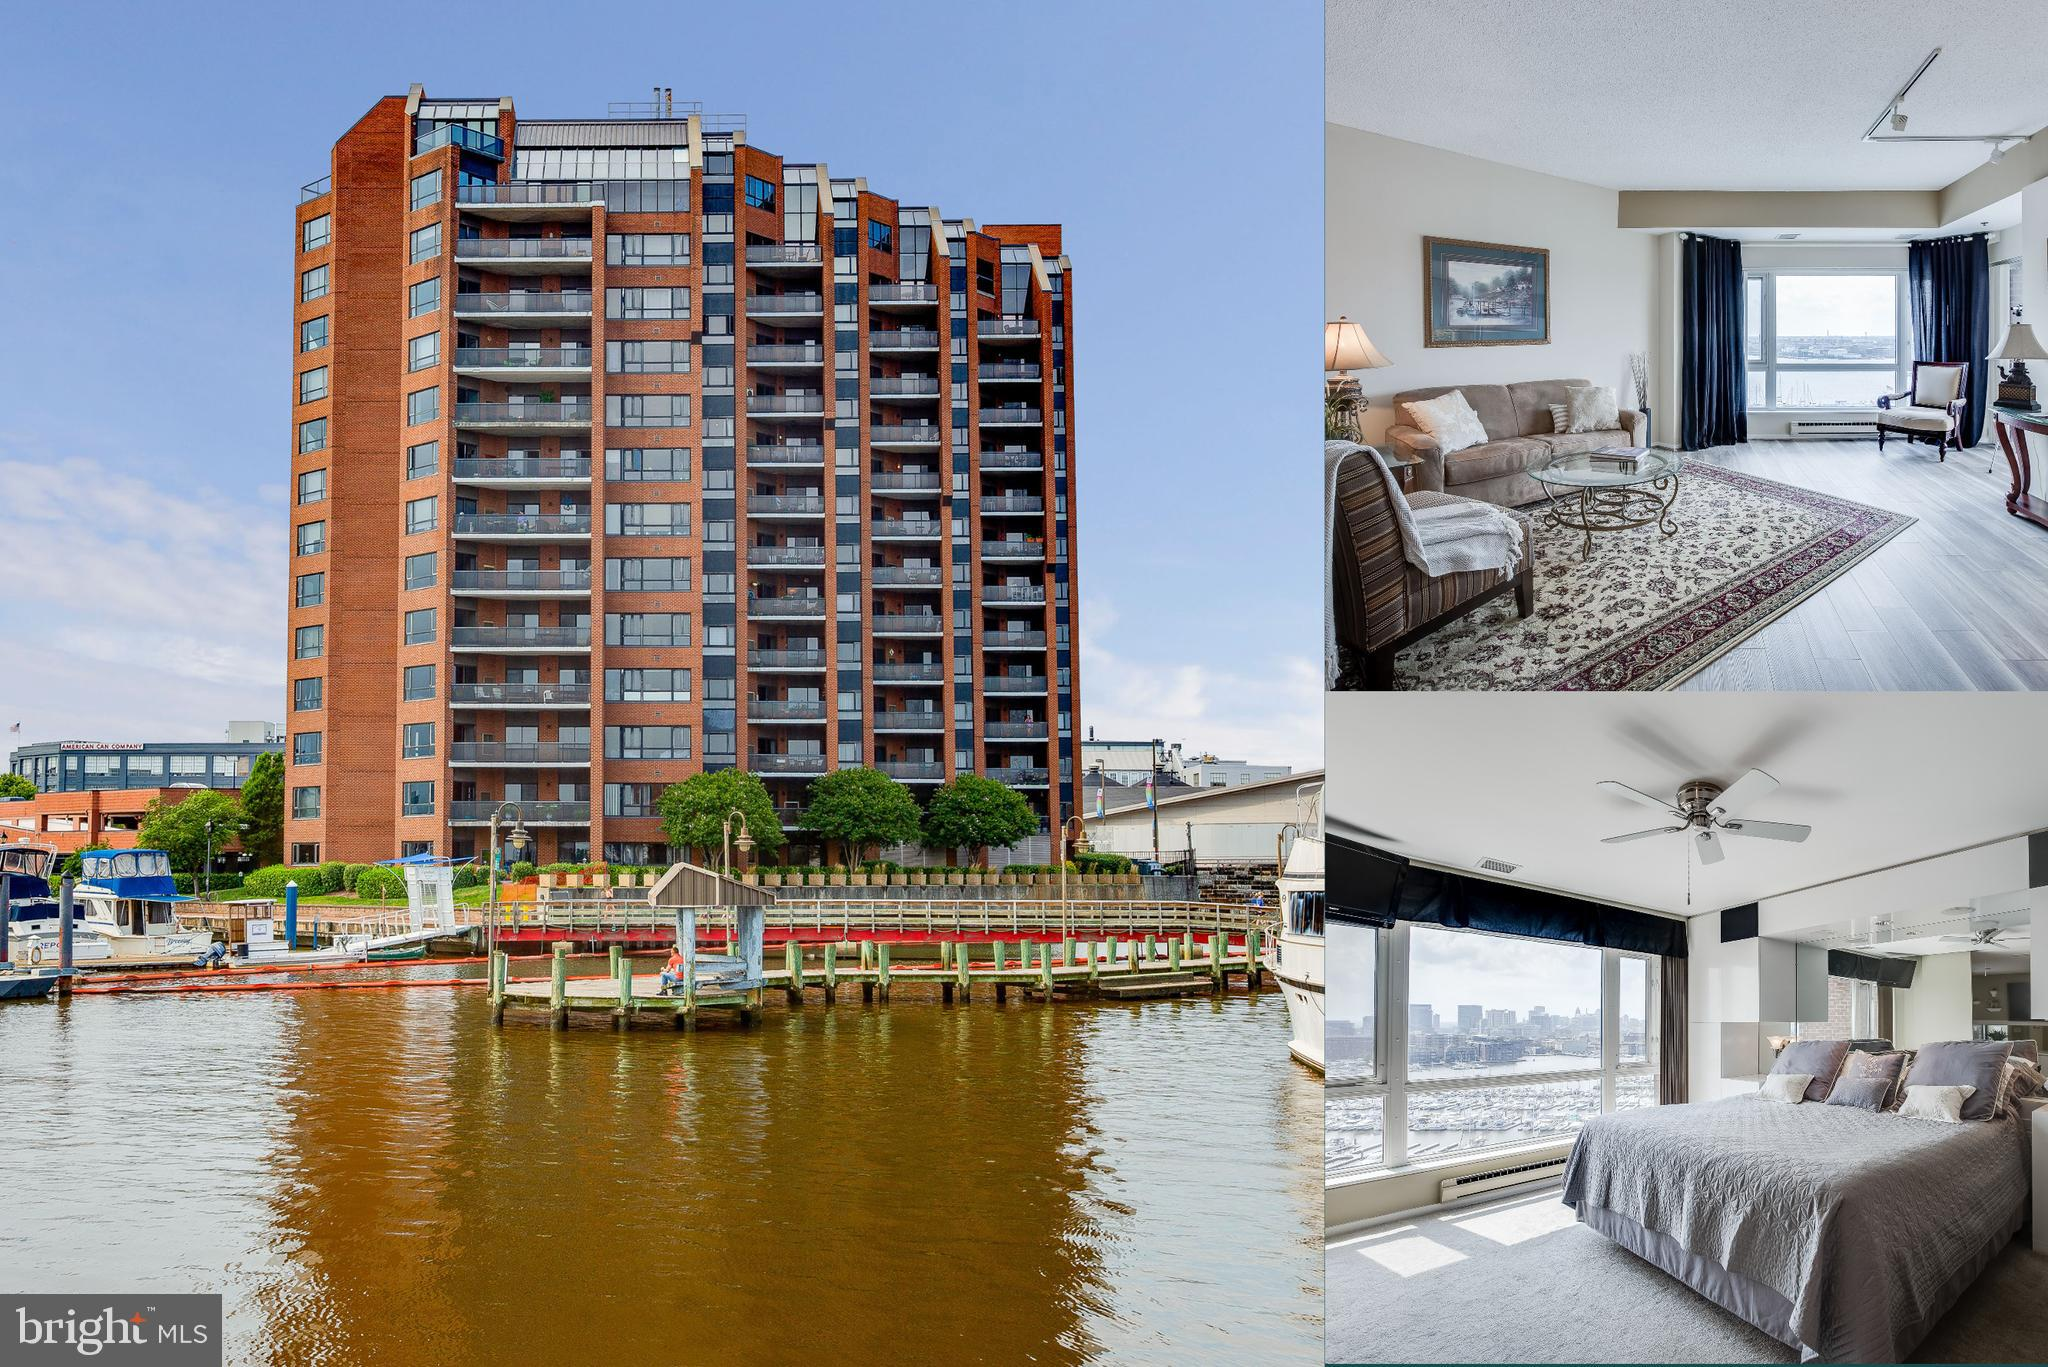 Postcard perfect views await you on the 12th level in the tallest residential building in southeast Baltimore. 2 bedroom, 2.5 bath corner unit offers breathtaking  water and city views from every room.   Upgraded kitchen  with wood floors and tile backsplash. Dual master suites can easily open into a masterful suite! Two balconies are perfect for unwinding the day with a cocktail with company or a good book. Unique to this unit are the 2 prime & protected covered parking spaces** Unit conveys with the largest available storage locker & additional same floor storage** 50' boat slip at Anchorage Marina available for sale by owner. 24 Hour secure building with front desk staff, lobby, meeting room, courtyard & fitness center. Just footsteps from the waterfront promenade, dining & shopping. Easy access to all the city has to offer & commuter routes. City Living At It's Best!